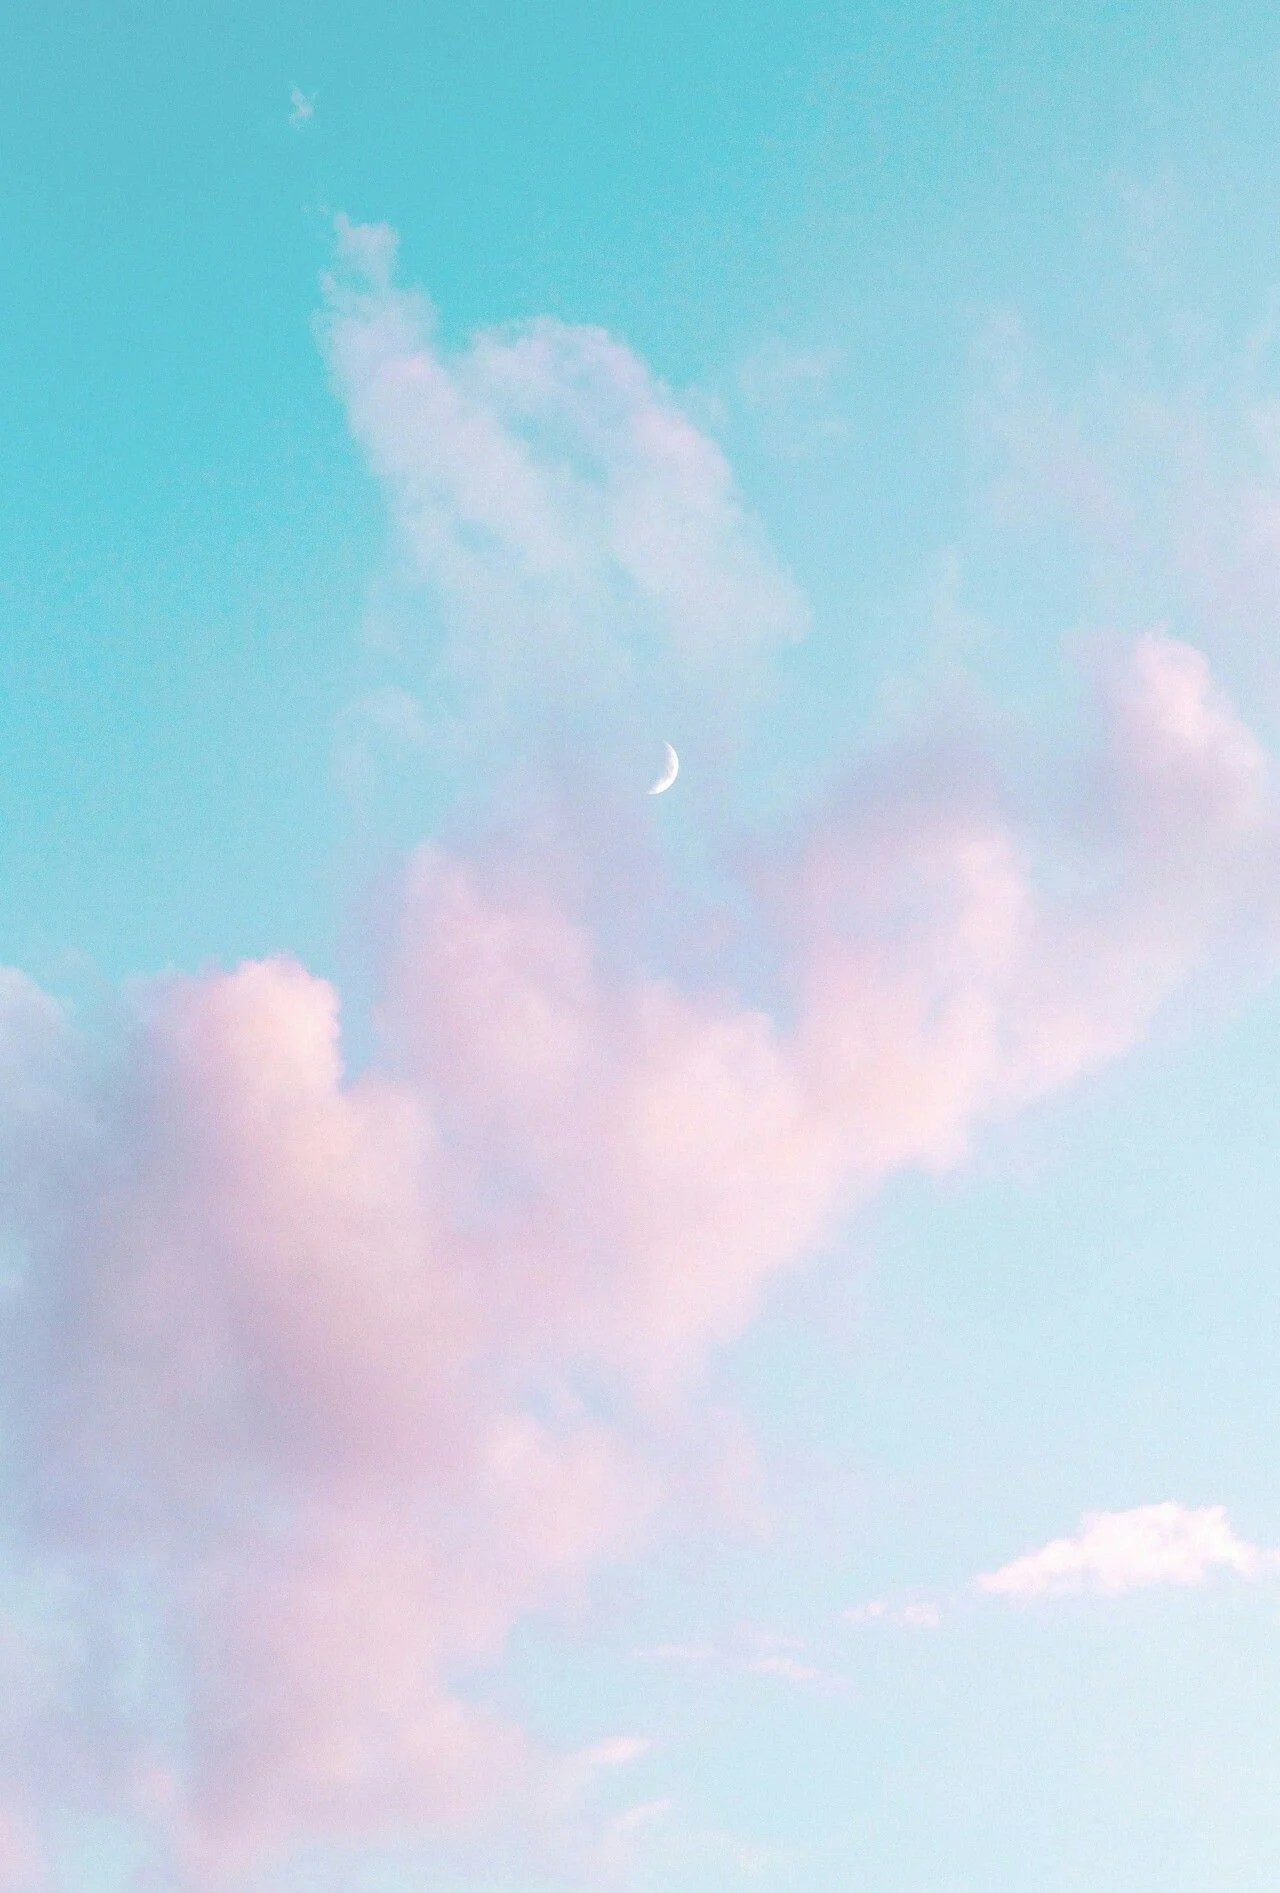 Aesthetic Backgrounds Pastel Blue : aesthetic, backgrounds, pastel, Pastel, Aesthetic, Wallpapers, Backgrounds, WallpaperAccess